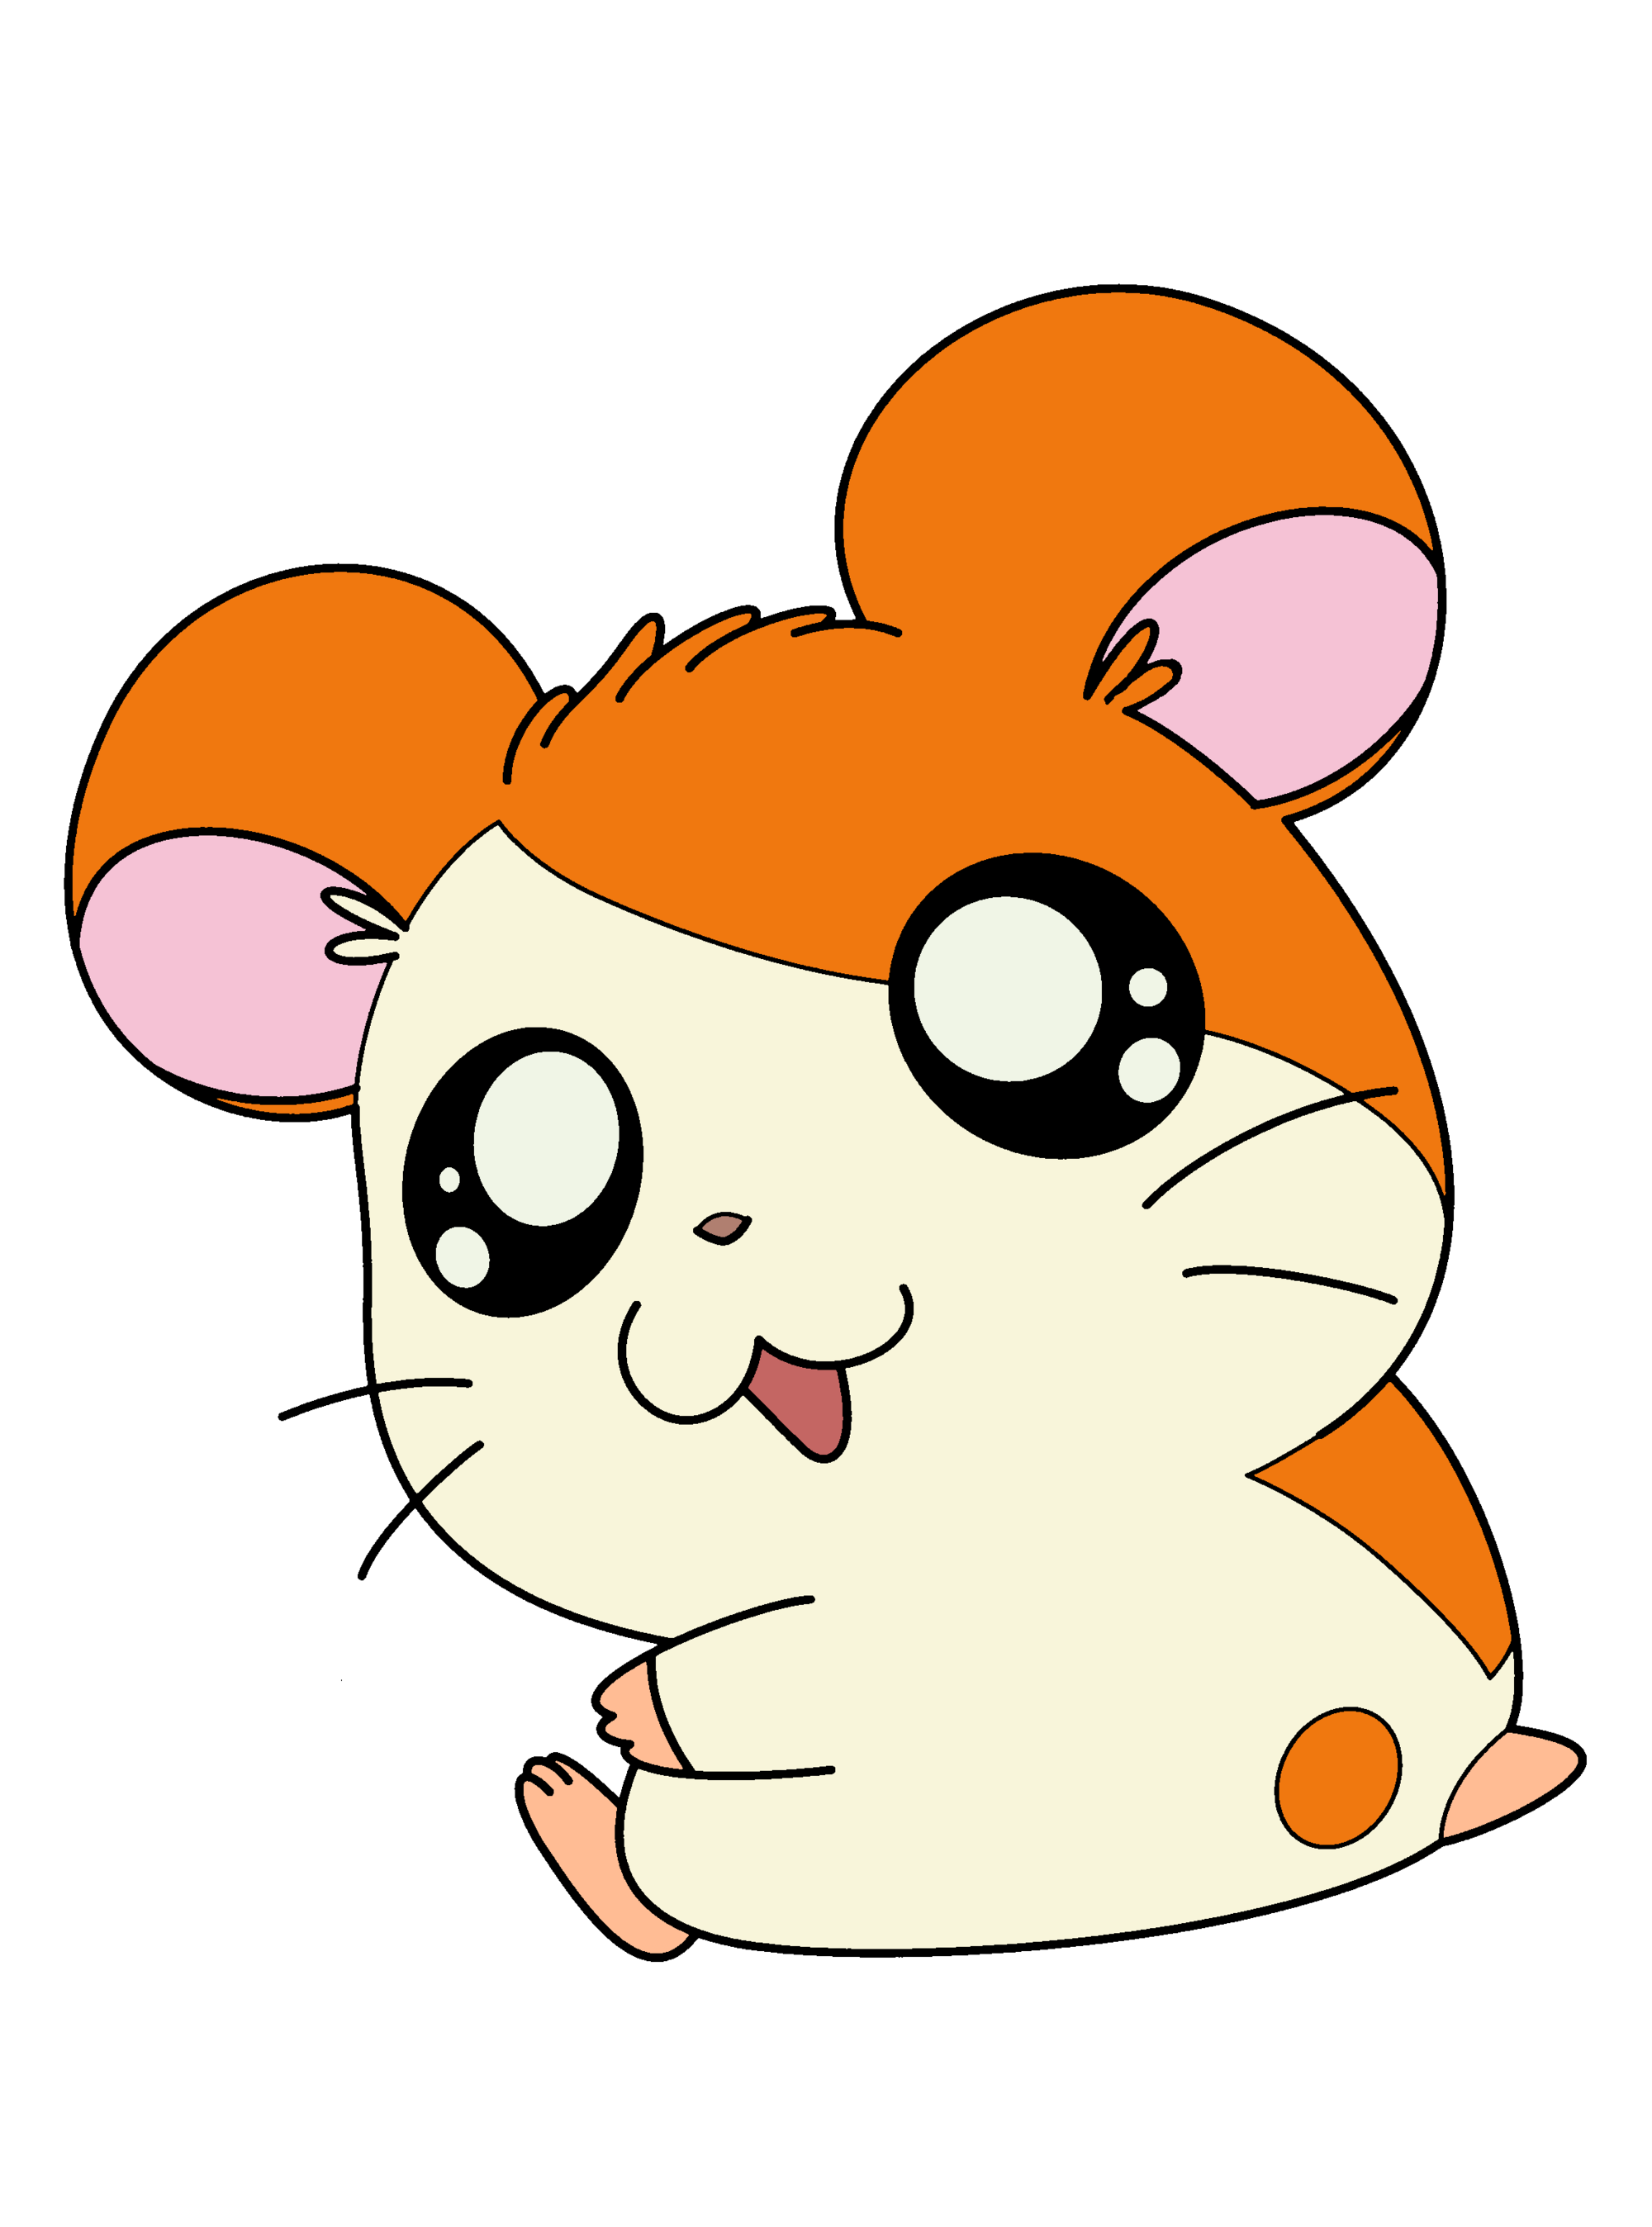 Hamtaro transparent fat. Vp pok mon thread